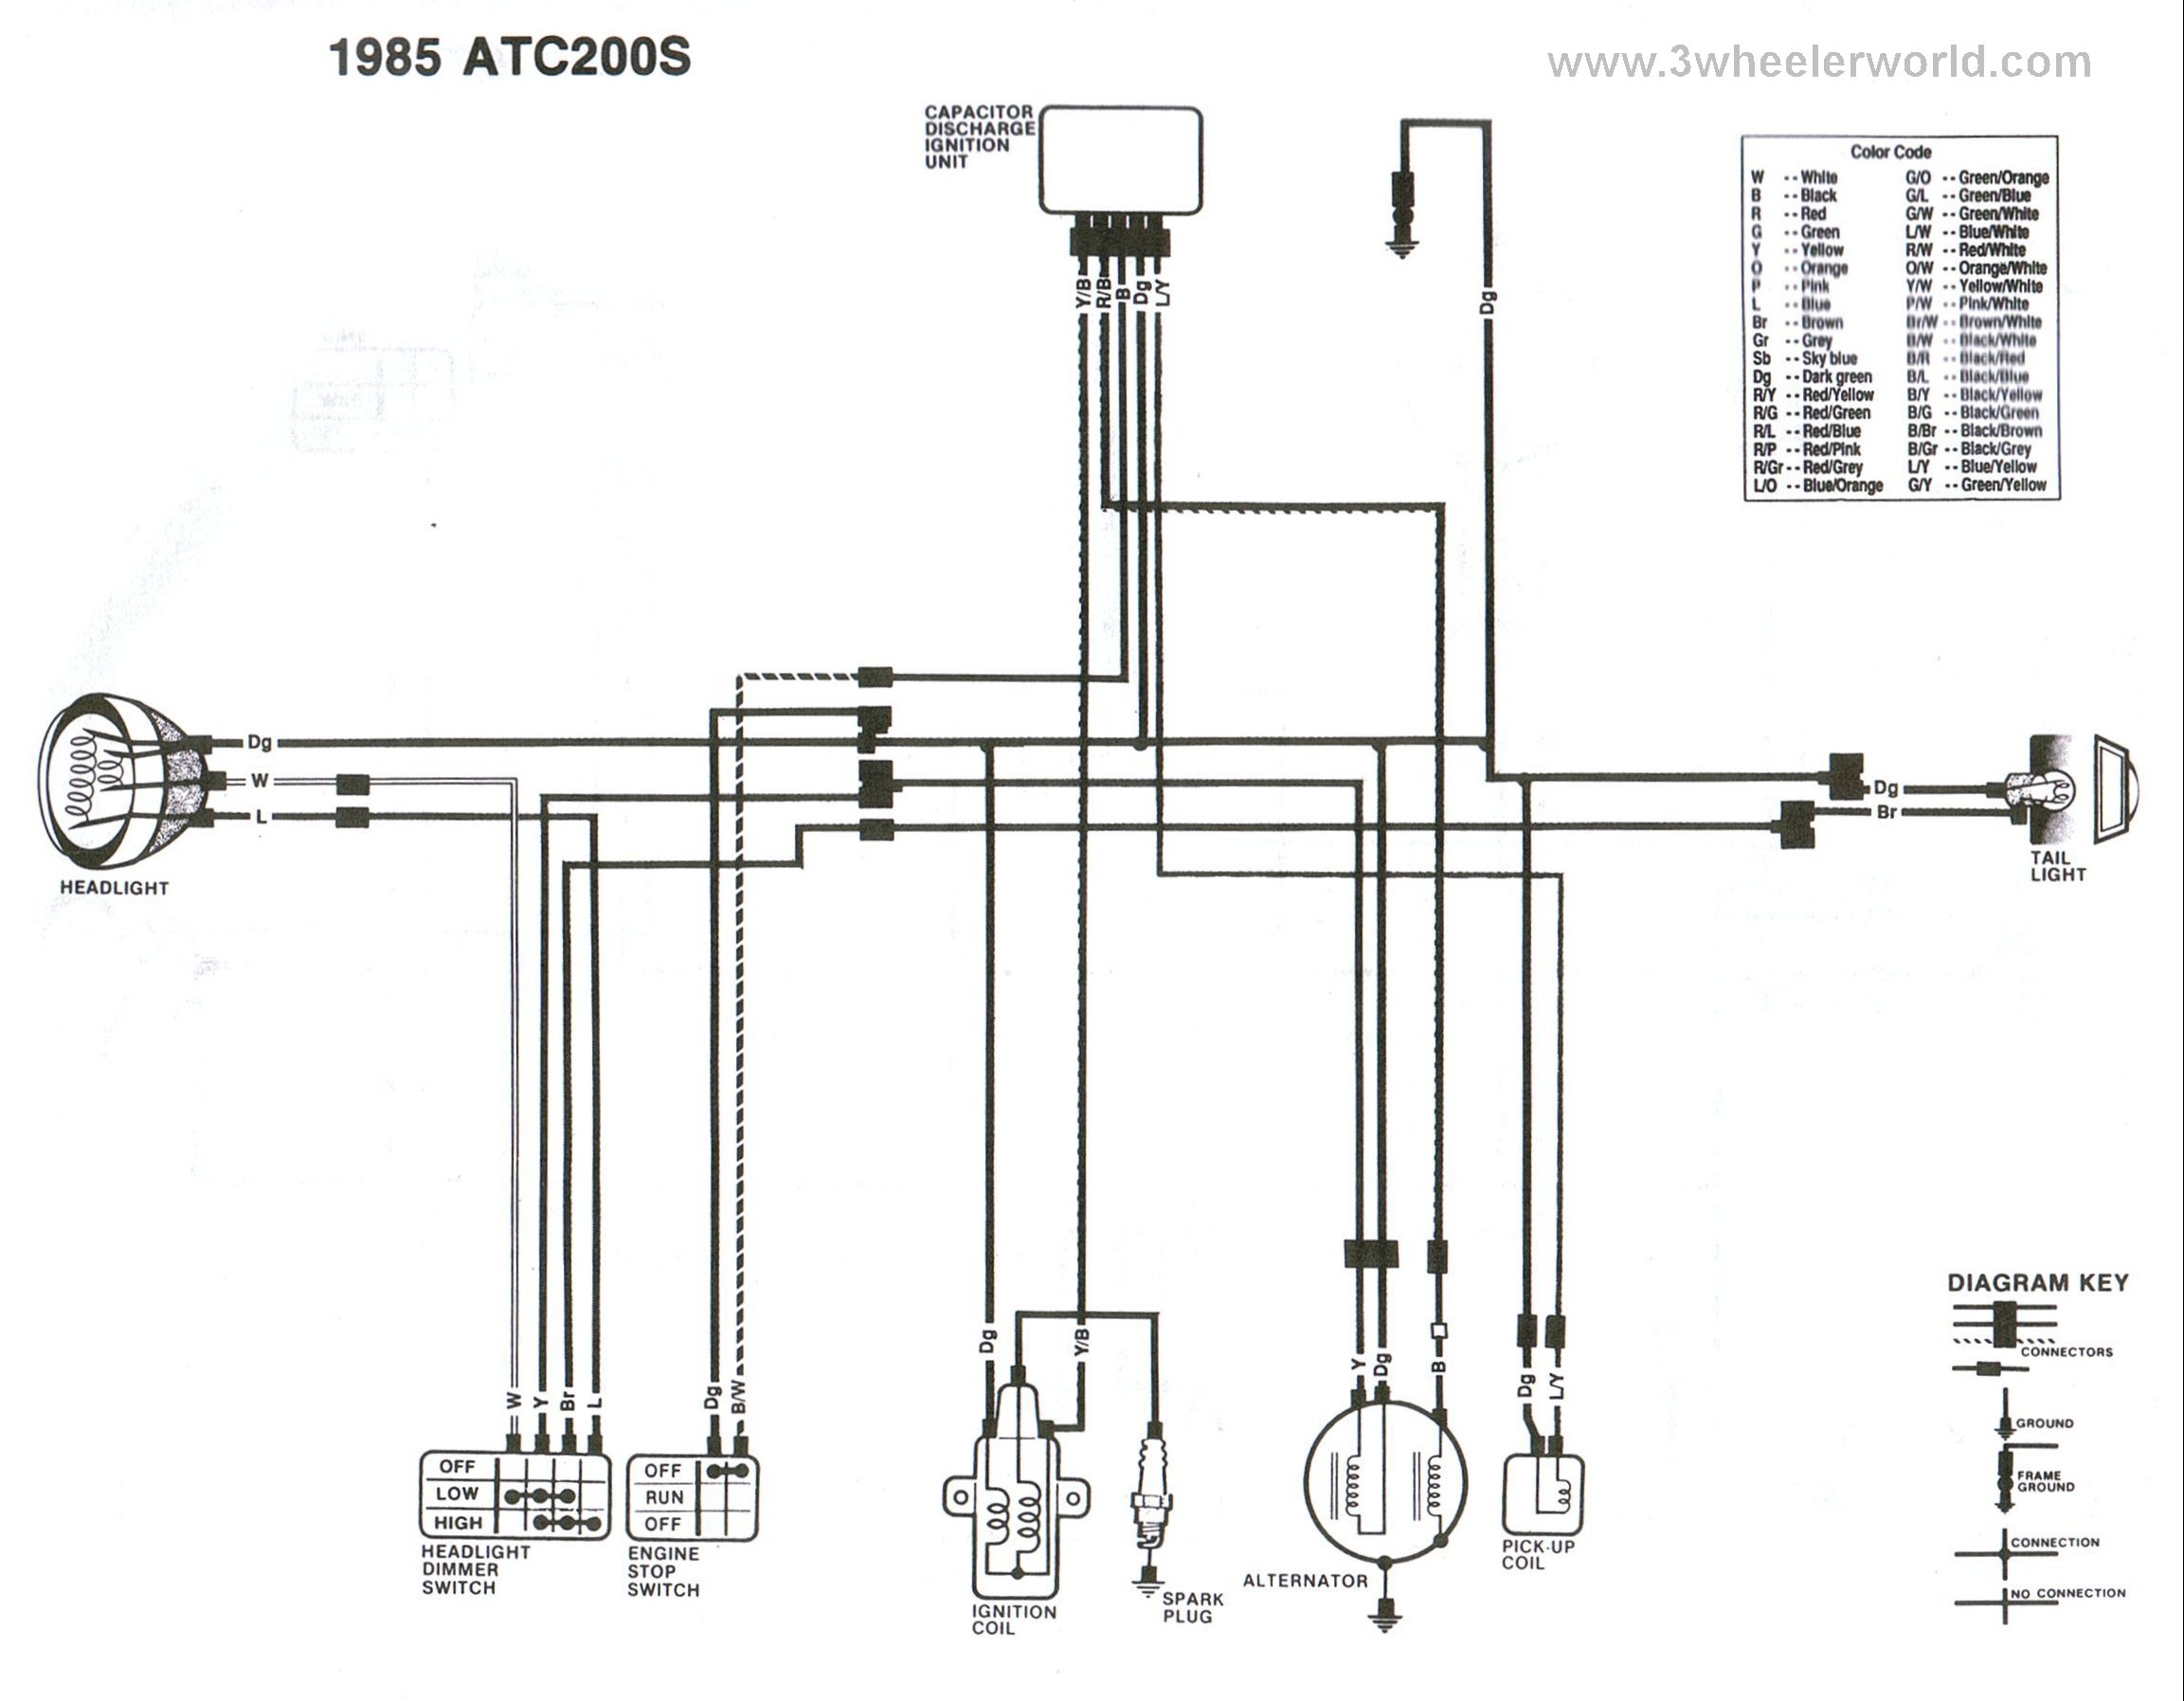 ATC200Sx85 refrigerator compressor wiring diagram dolgular com  at fashall.co